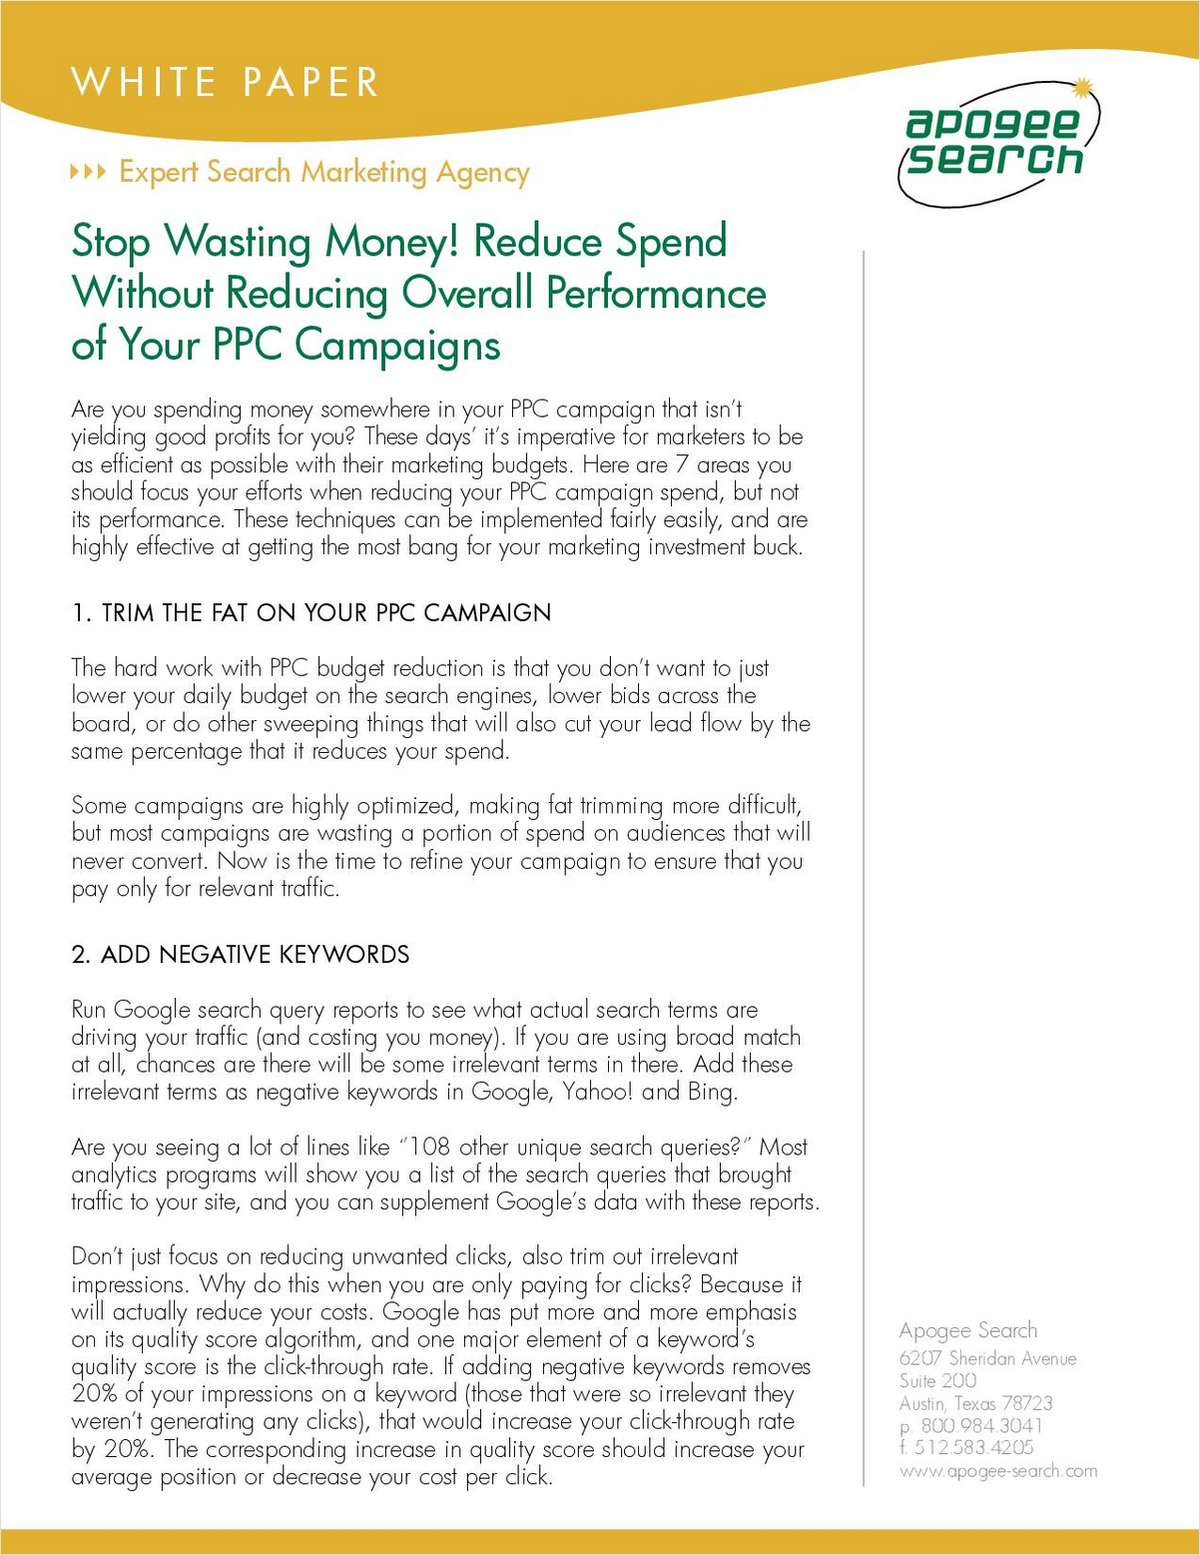 Stop Wasting Money! Reduce Spend without Reducing Overall Performance of Your PPC Campaigns